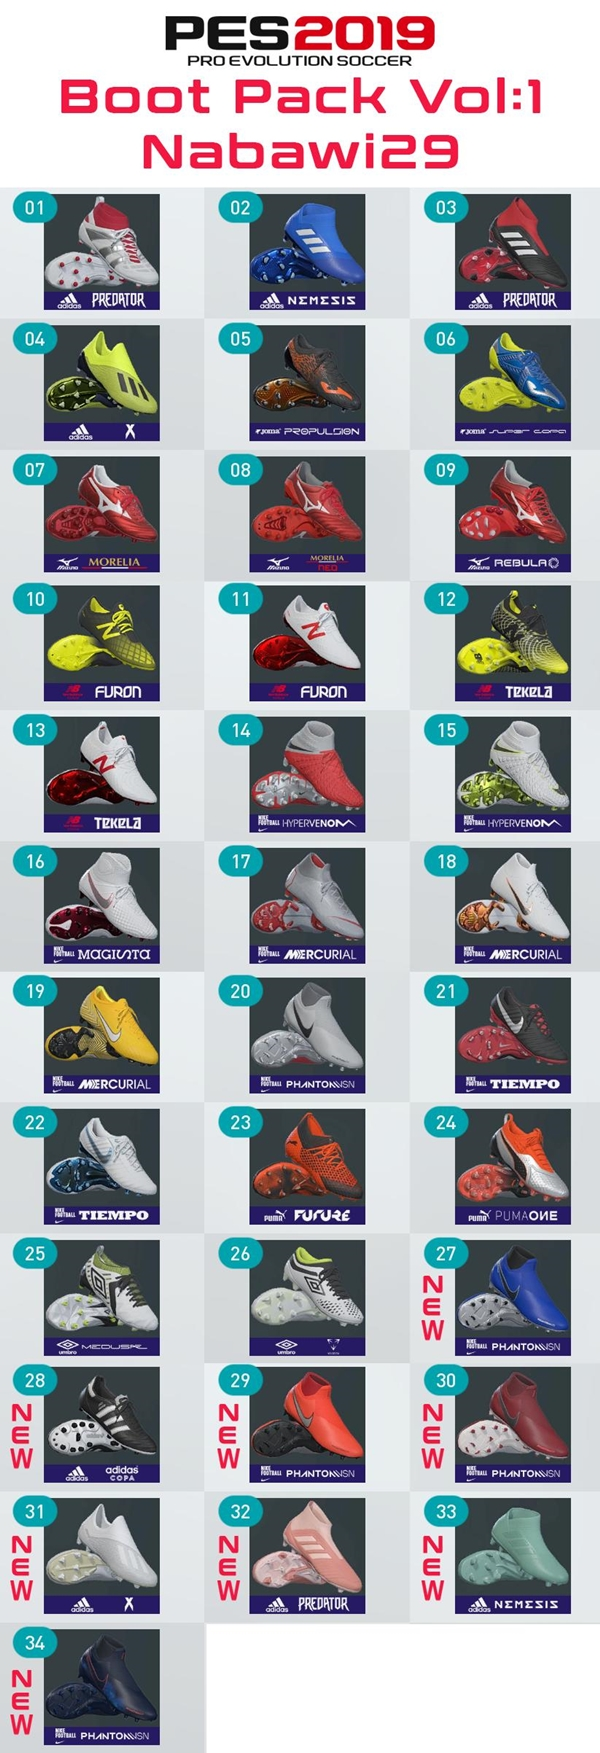 Boots Pack V1 PES 2019 PC - by nabawi29